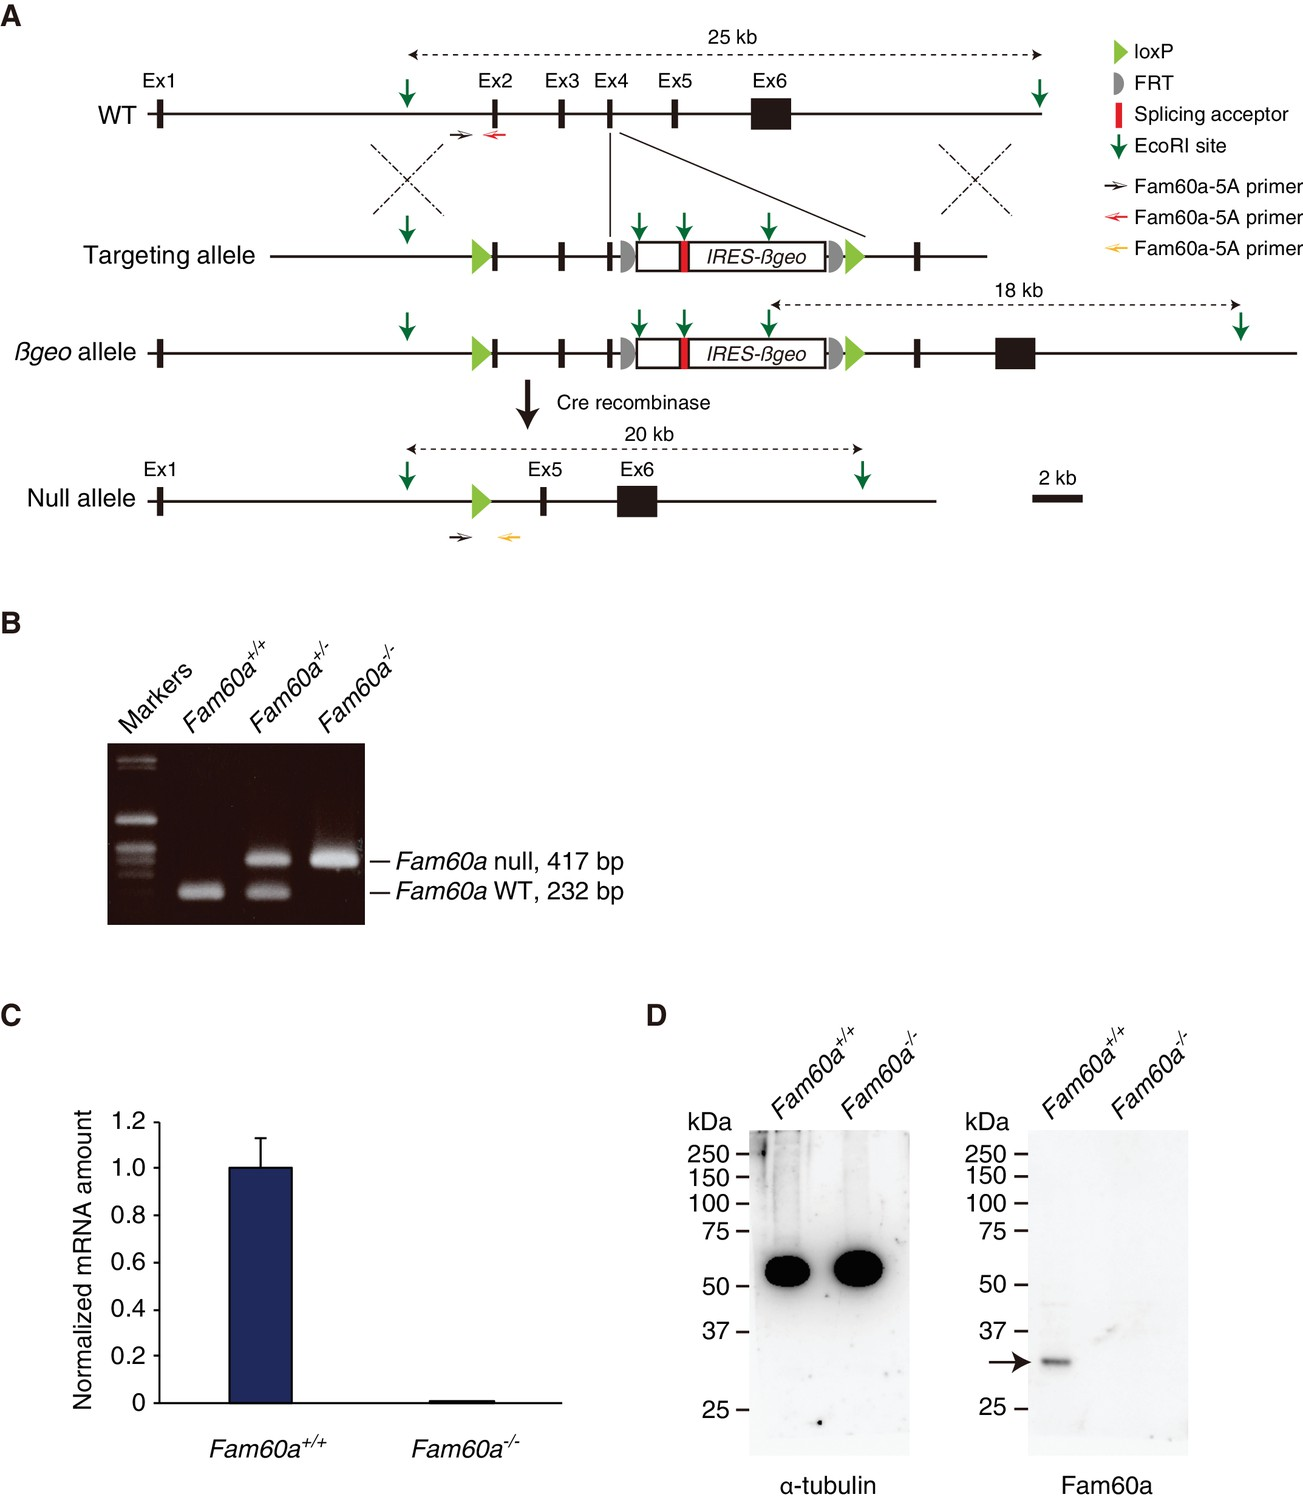 Loss Of Fam60a A Sin3a Subunit Results In Embryonic Lethality And Ford Fusion V6 3 0 Fuse 48 Diagram Generation Mutant Mice